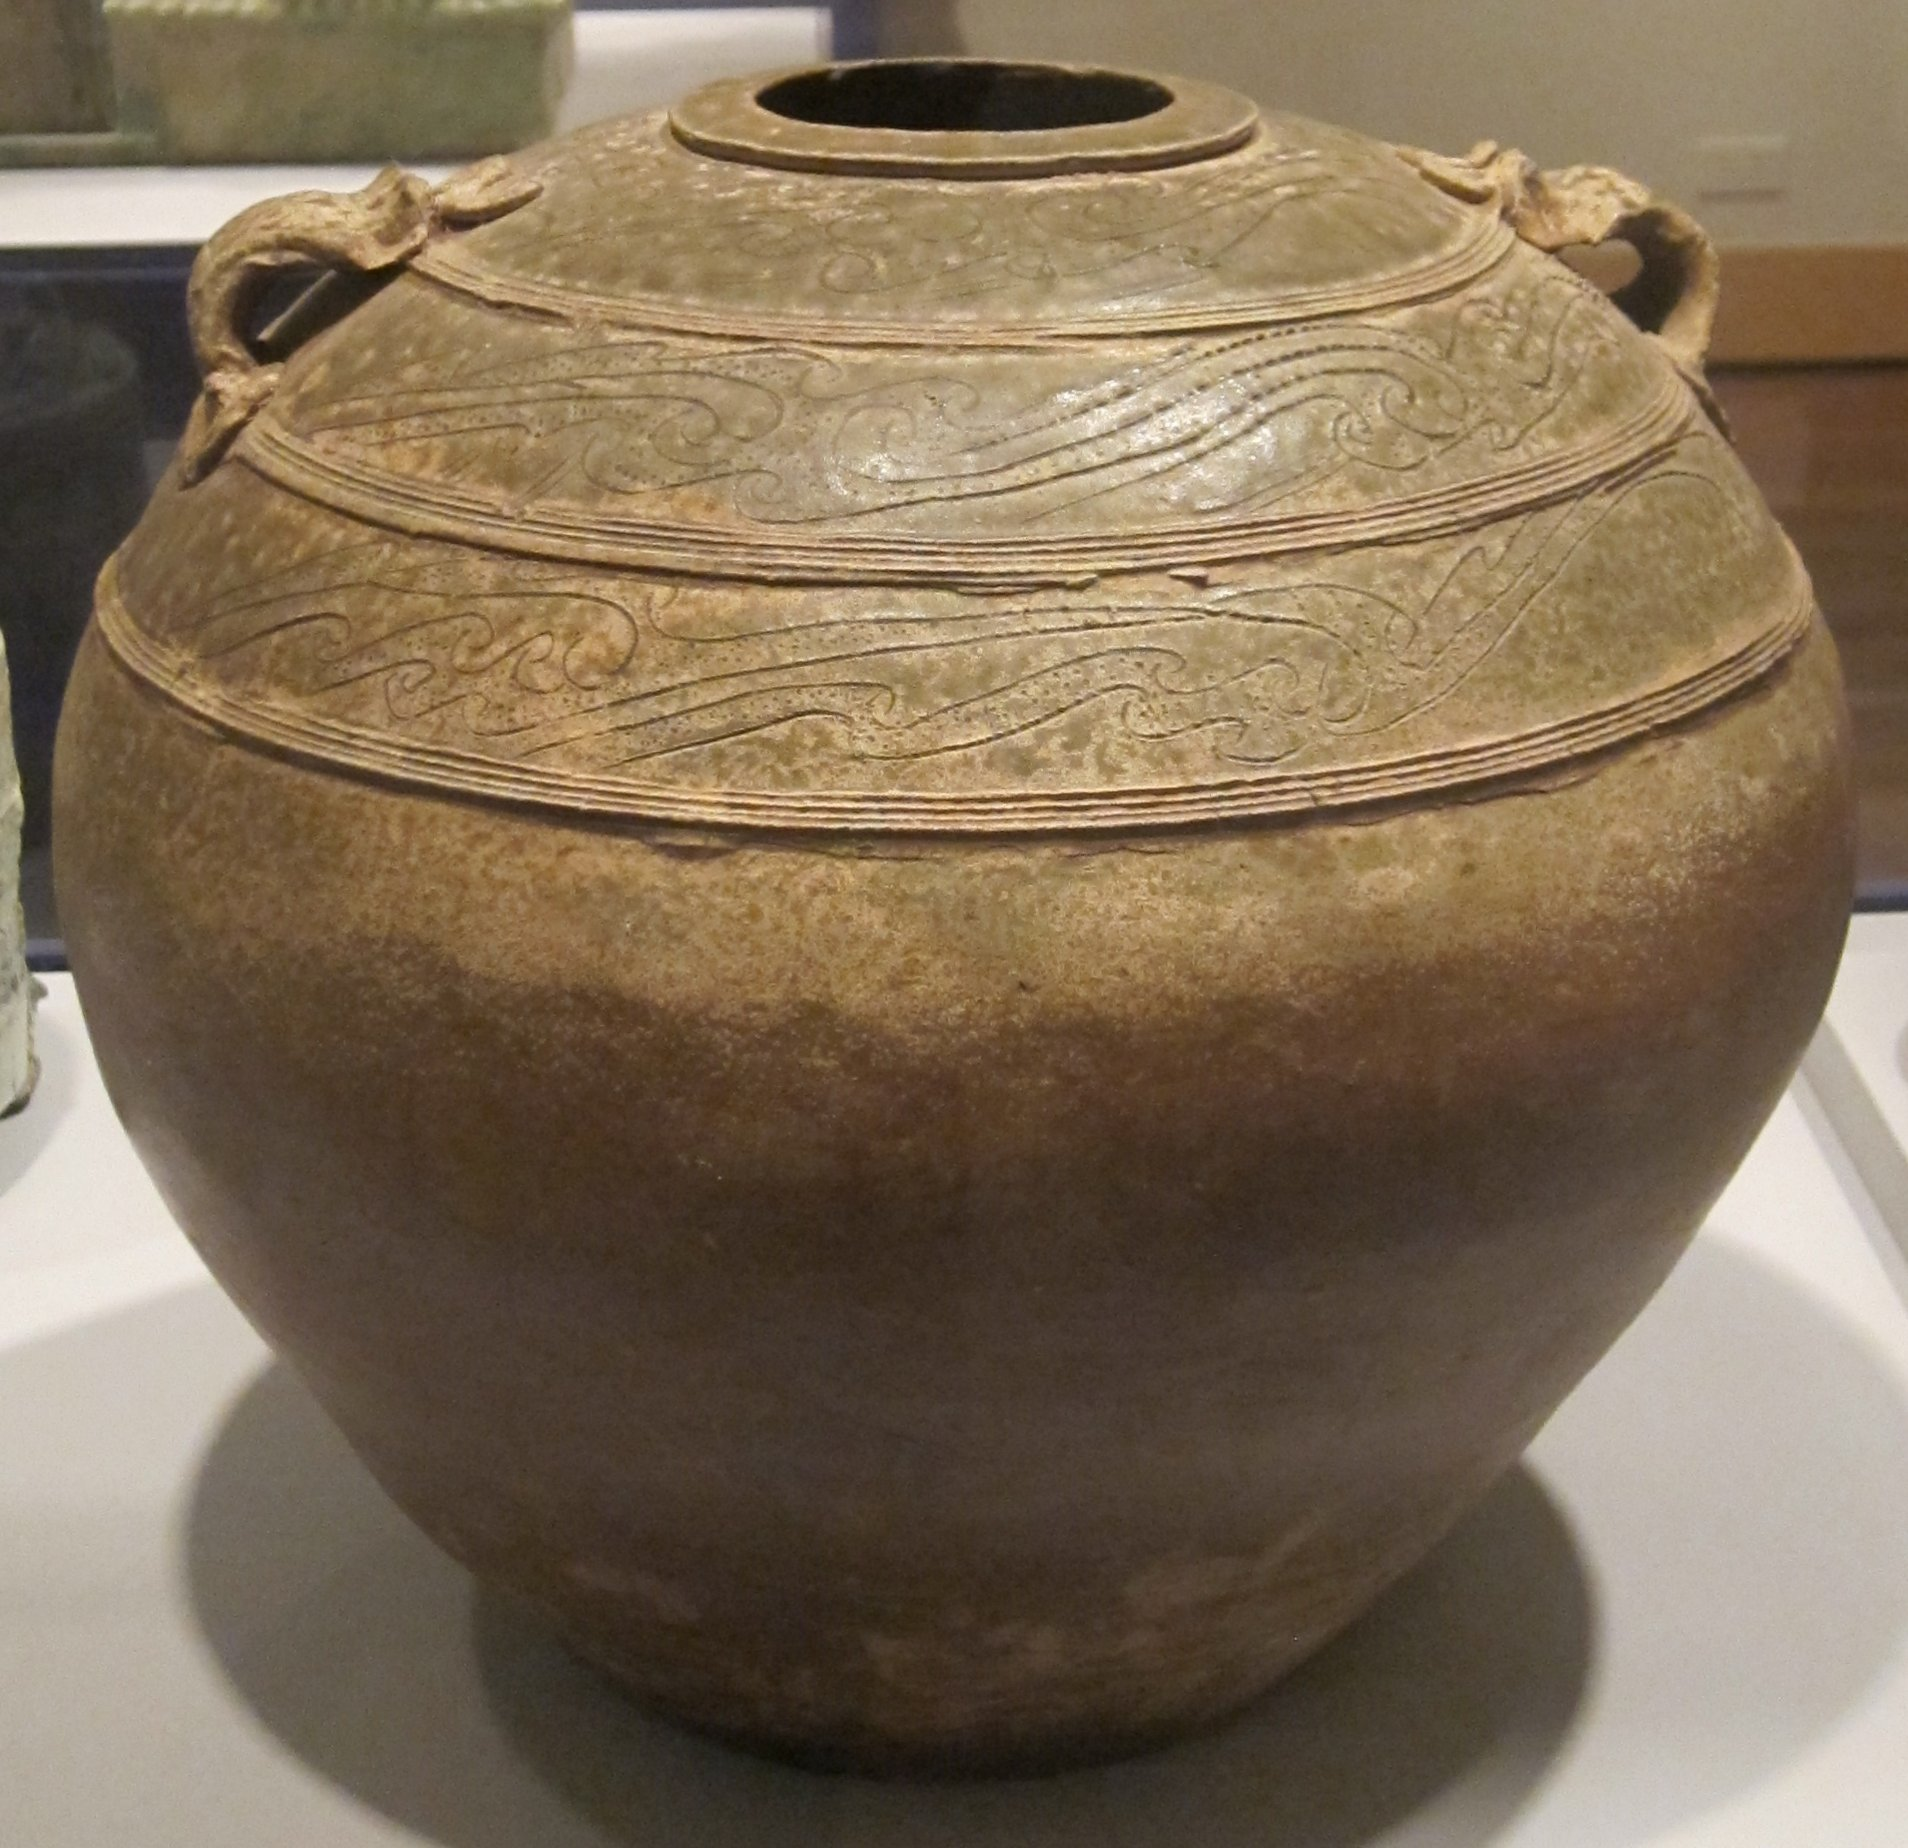 stoneware - definition - What is